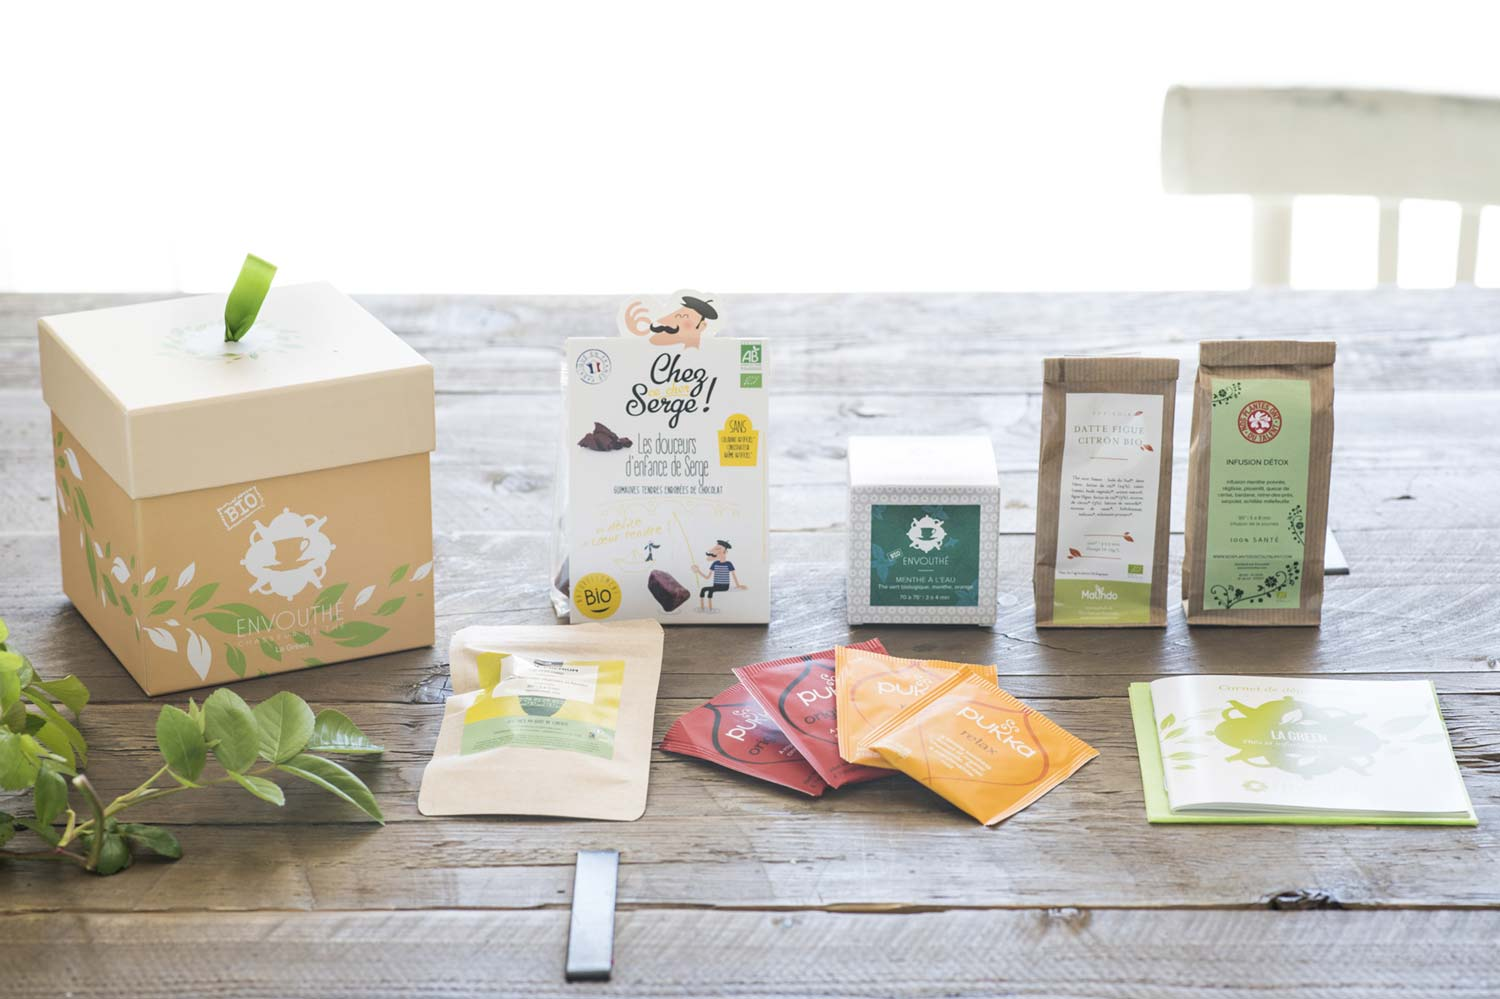 la green box the envouthe bio biologique